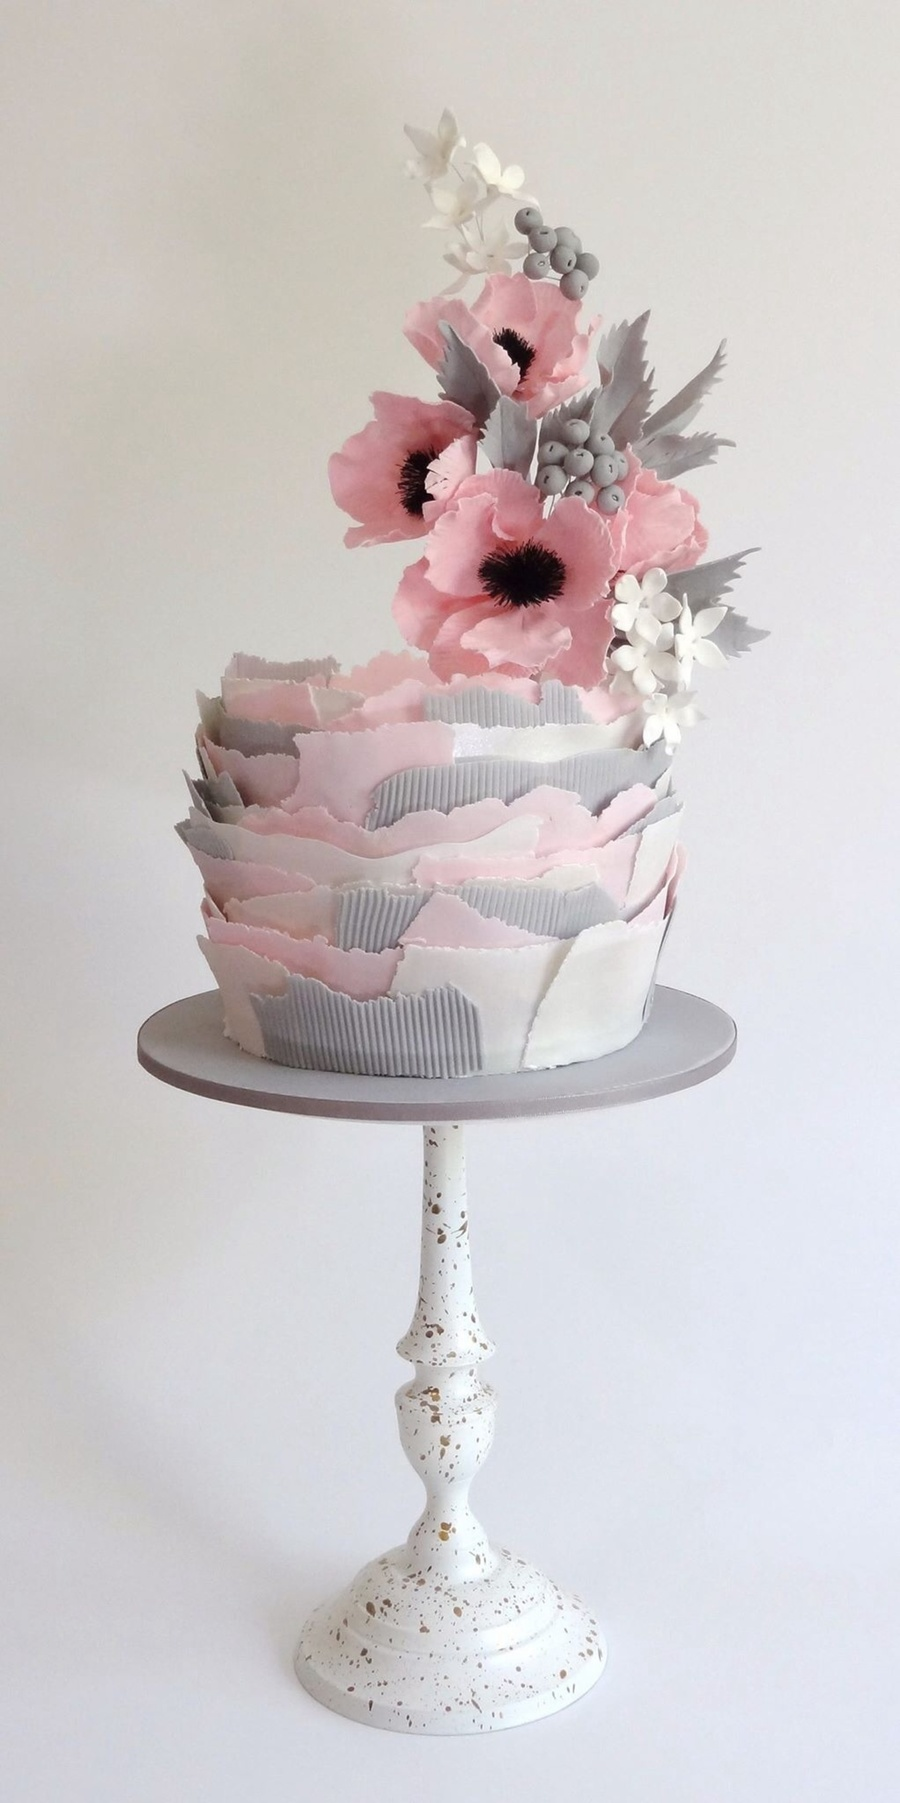 Torn Paper And Elevated Flowers. on Cake Central